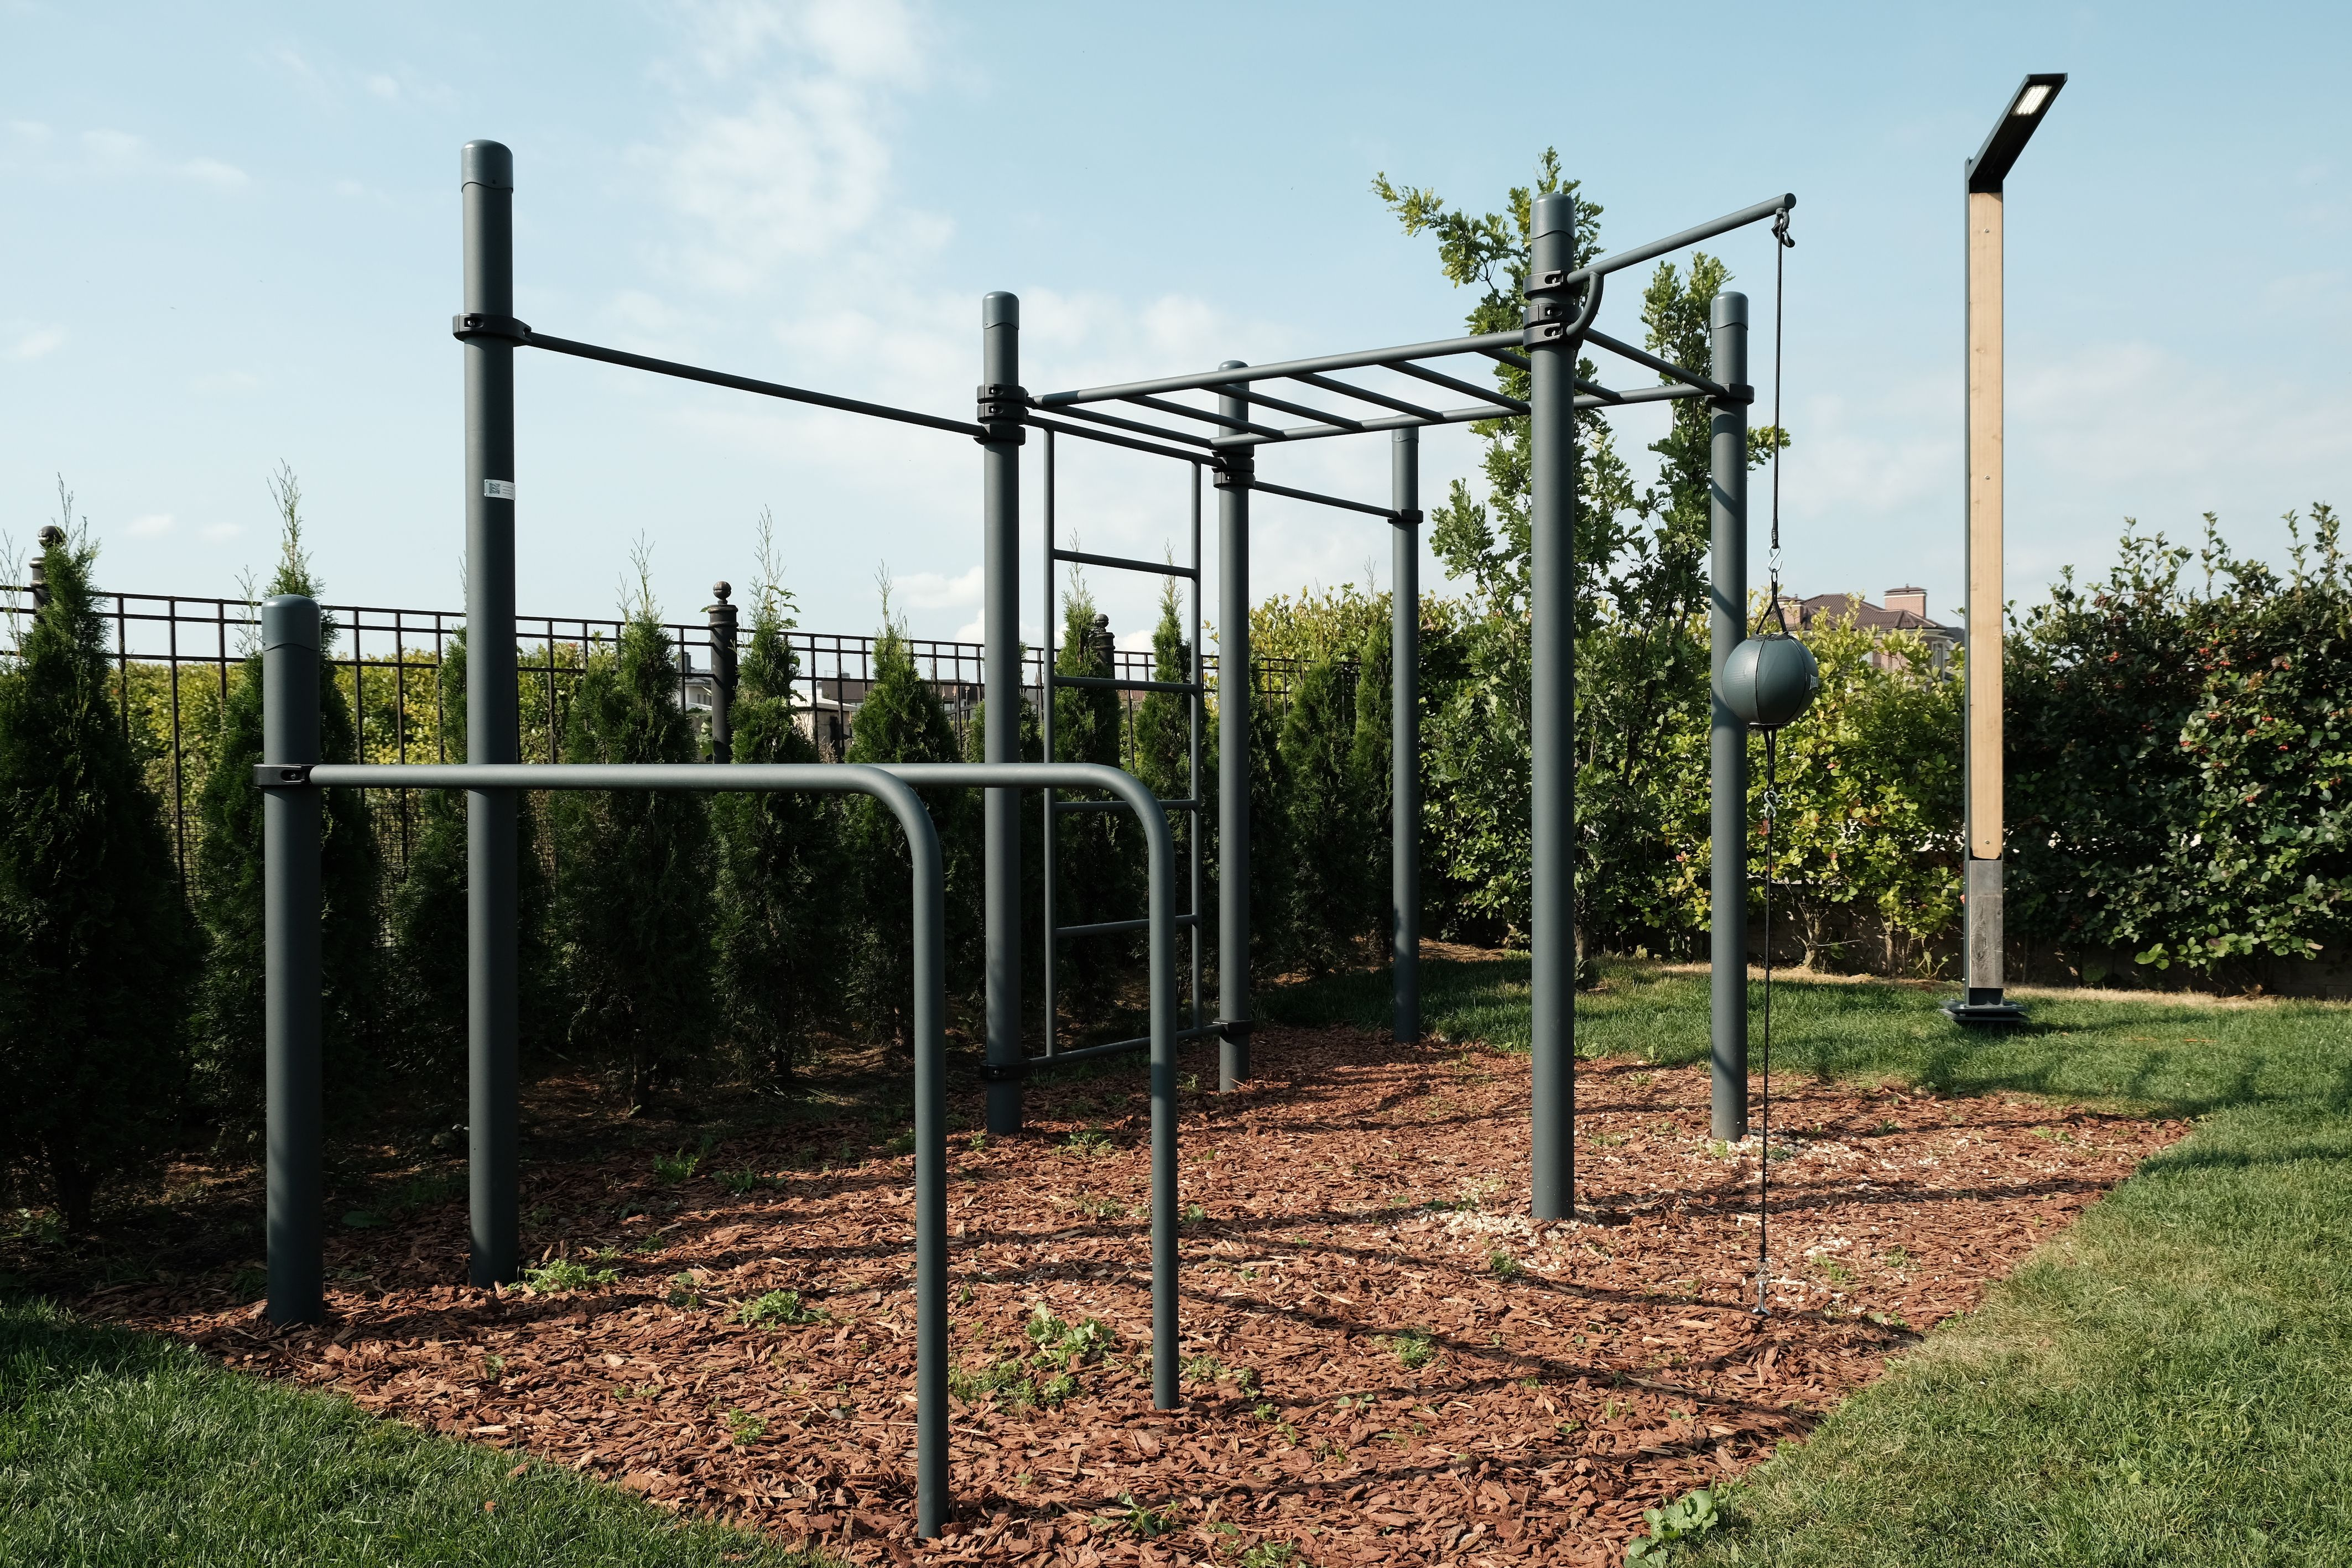 Street Workout Private House Equipment Outdoor Gym Outdoor Gym Equipment Outdoor Fitness Equipment